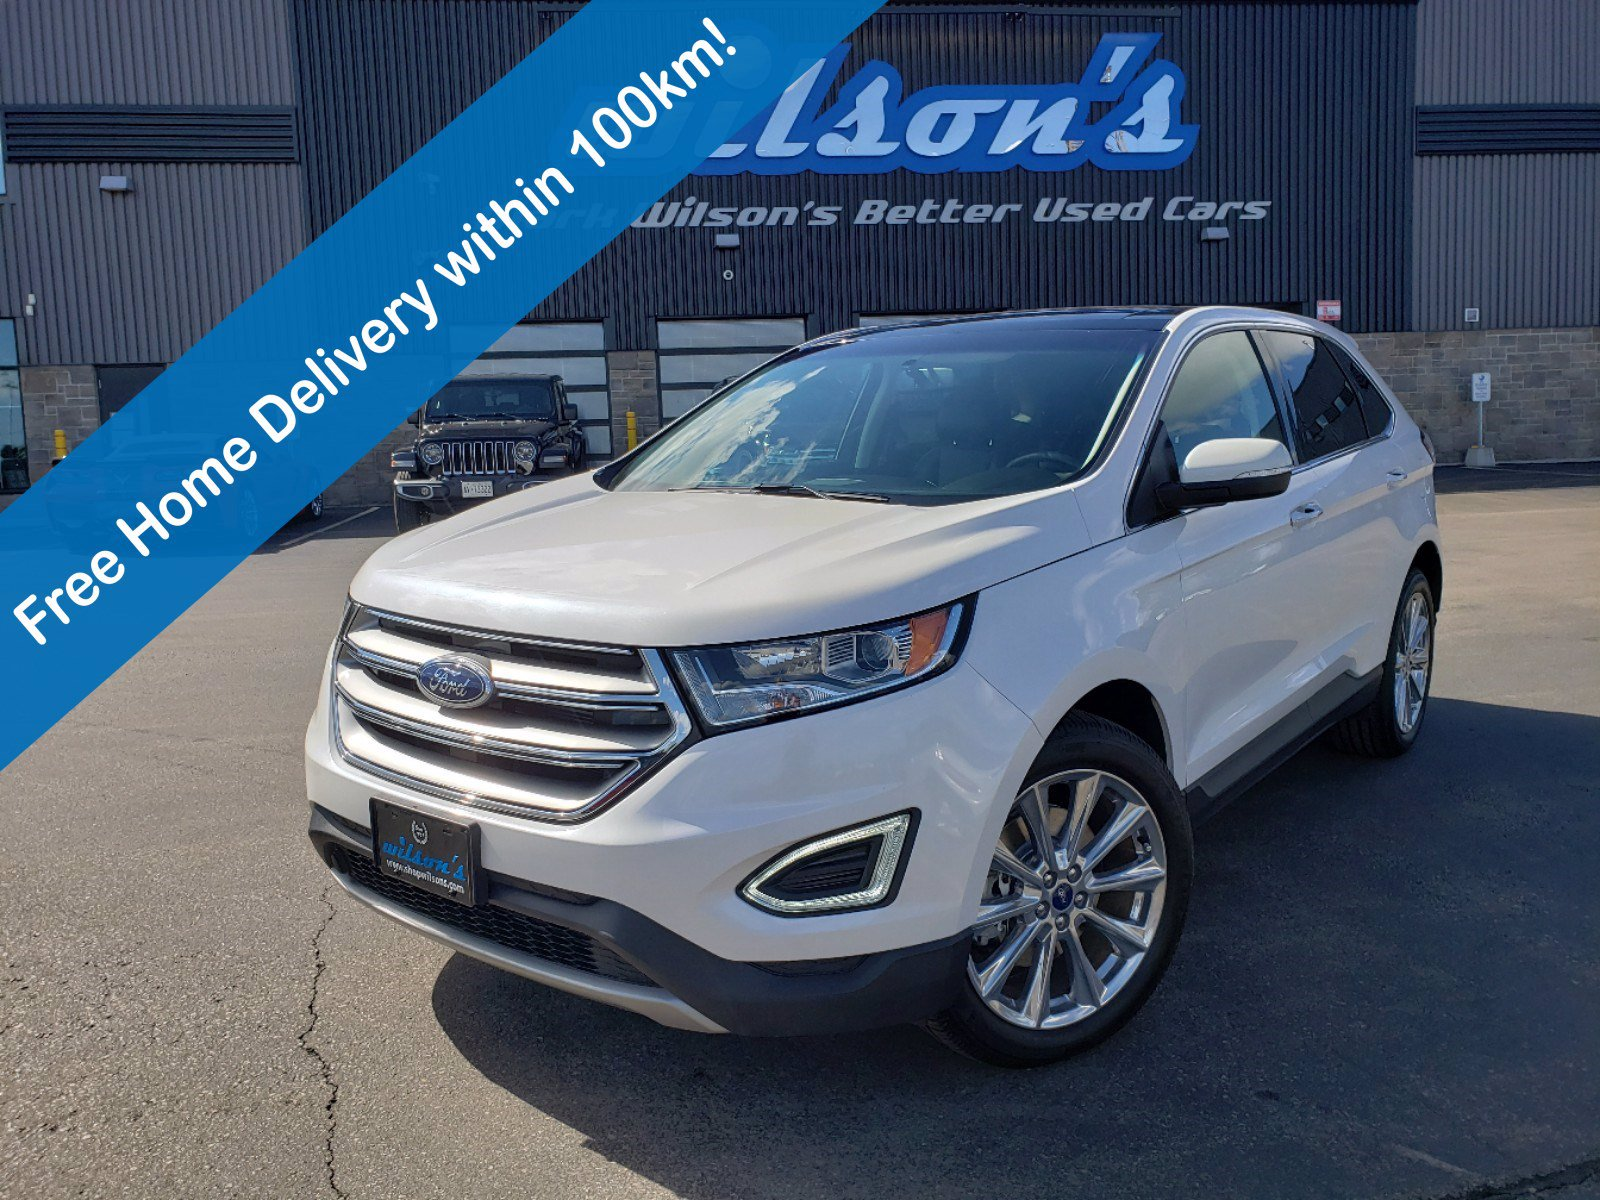 Certified Pre-Owned 2018 Ford Edge Titanium AWD V6, Leather, Sunroof, Navigation, Cooled+Heated Seats, Rear Camera, & Much More!